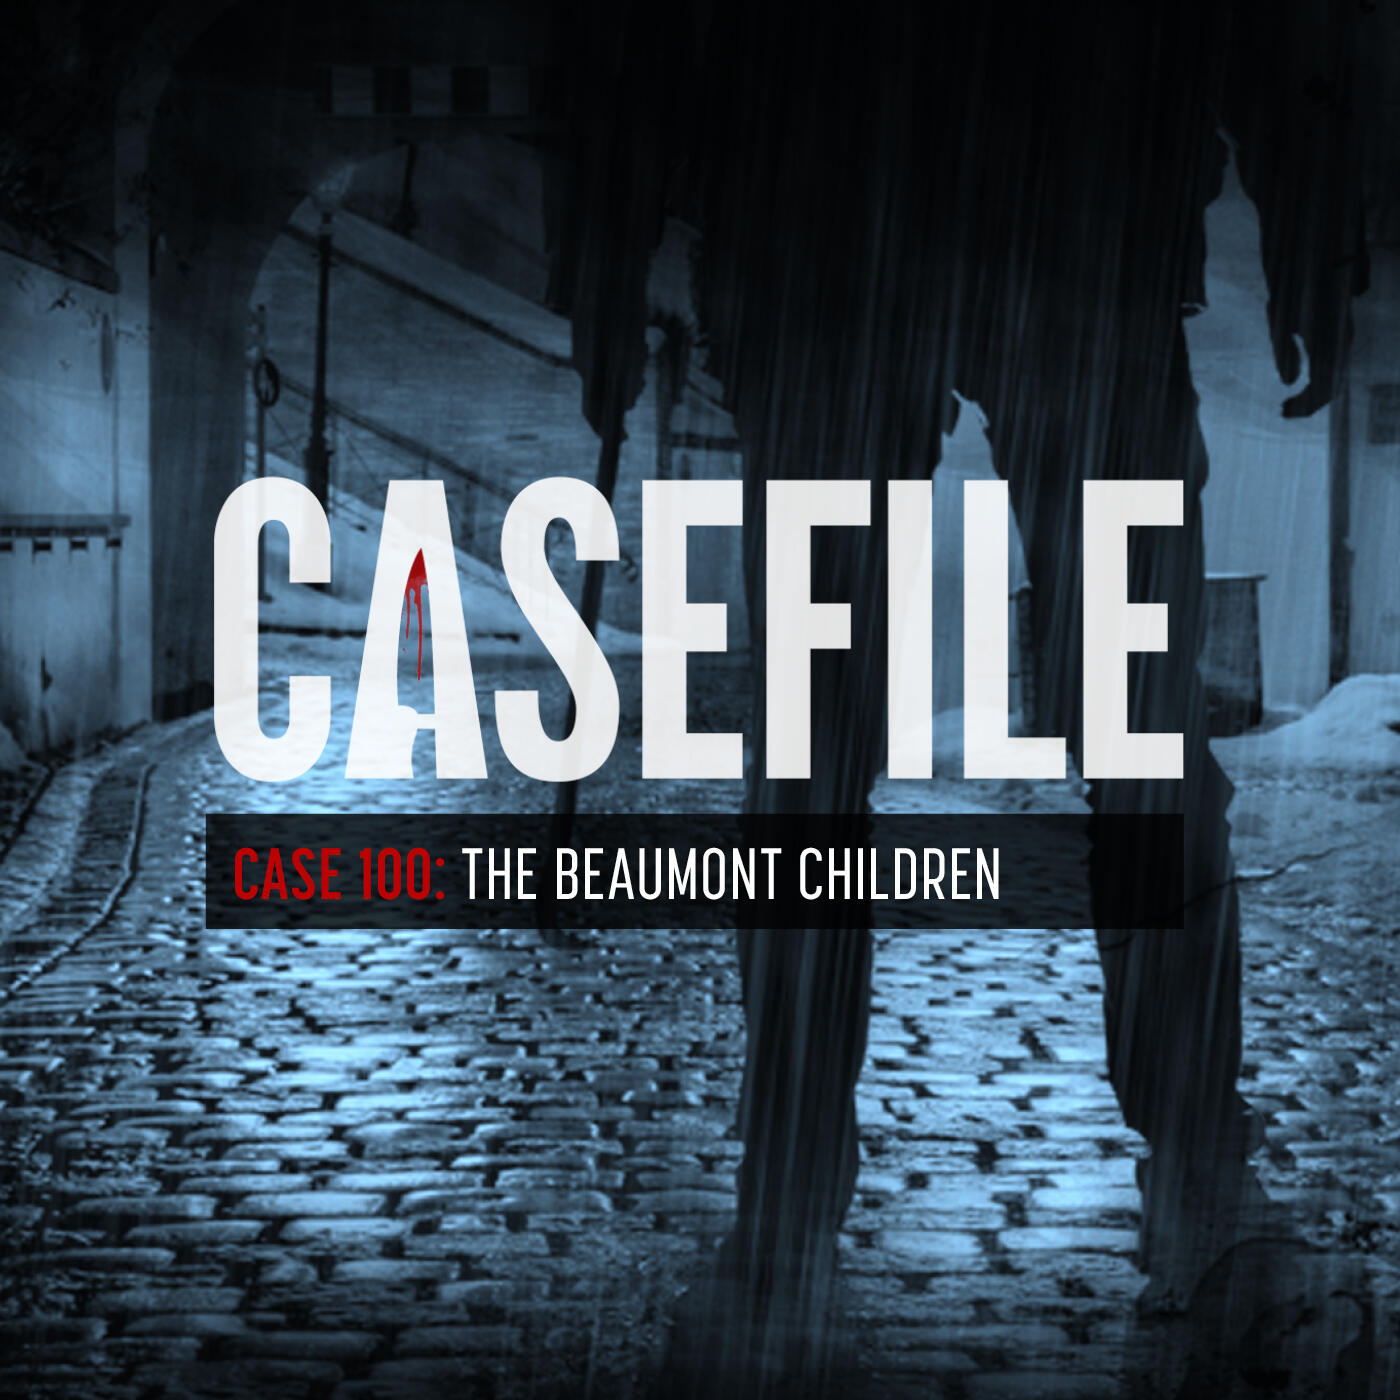 Case 100: The Beaumont Children